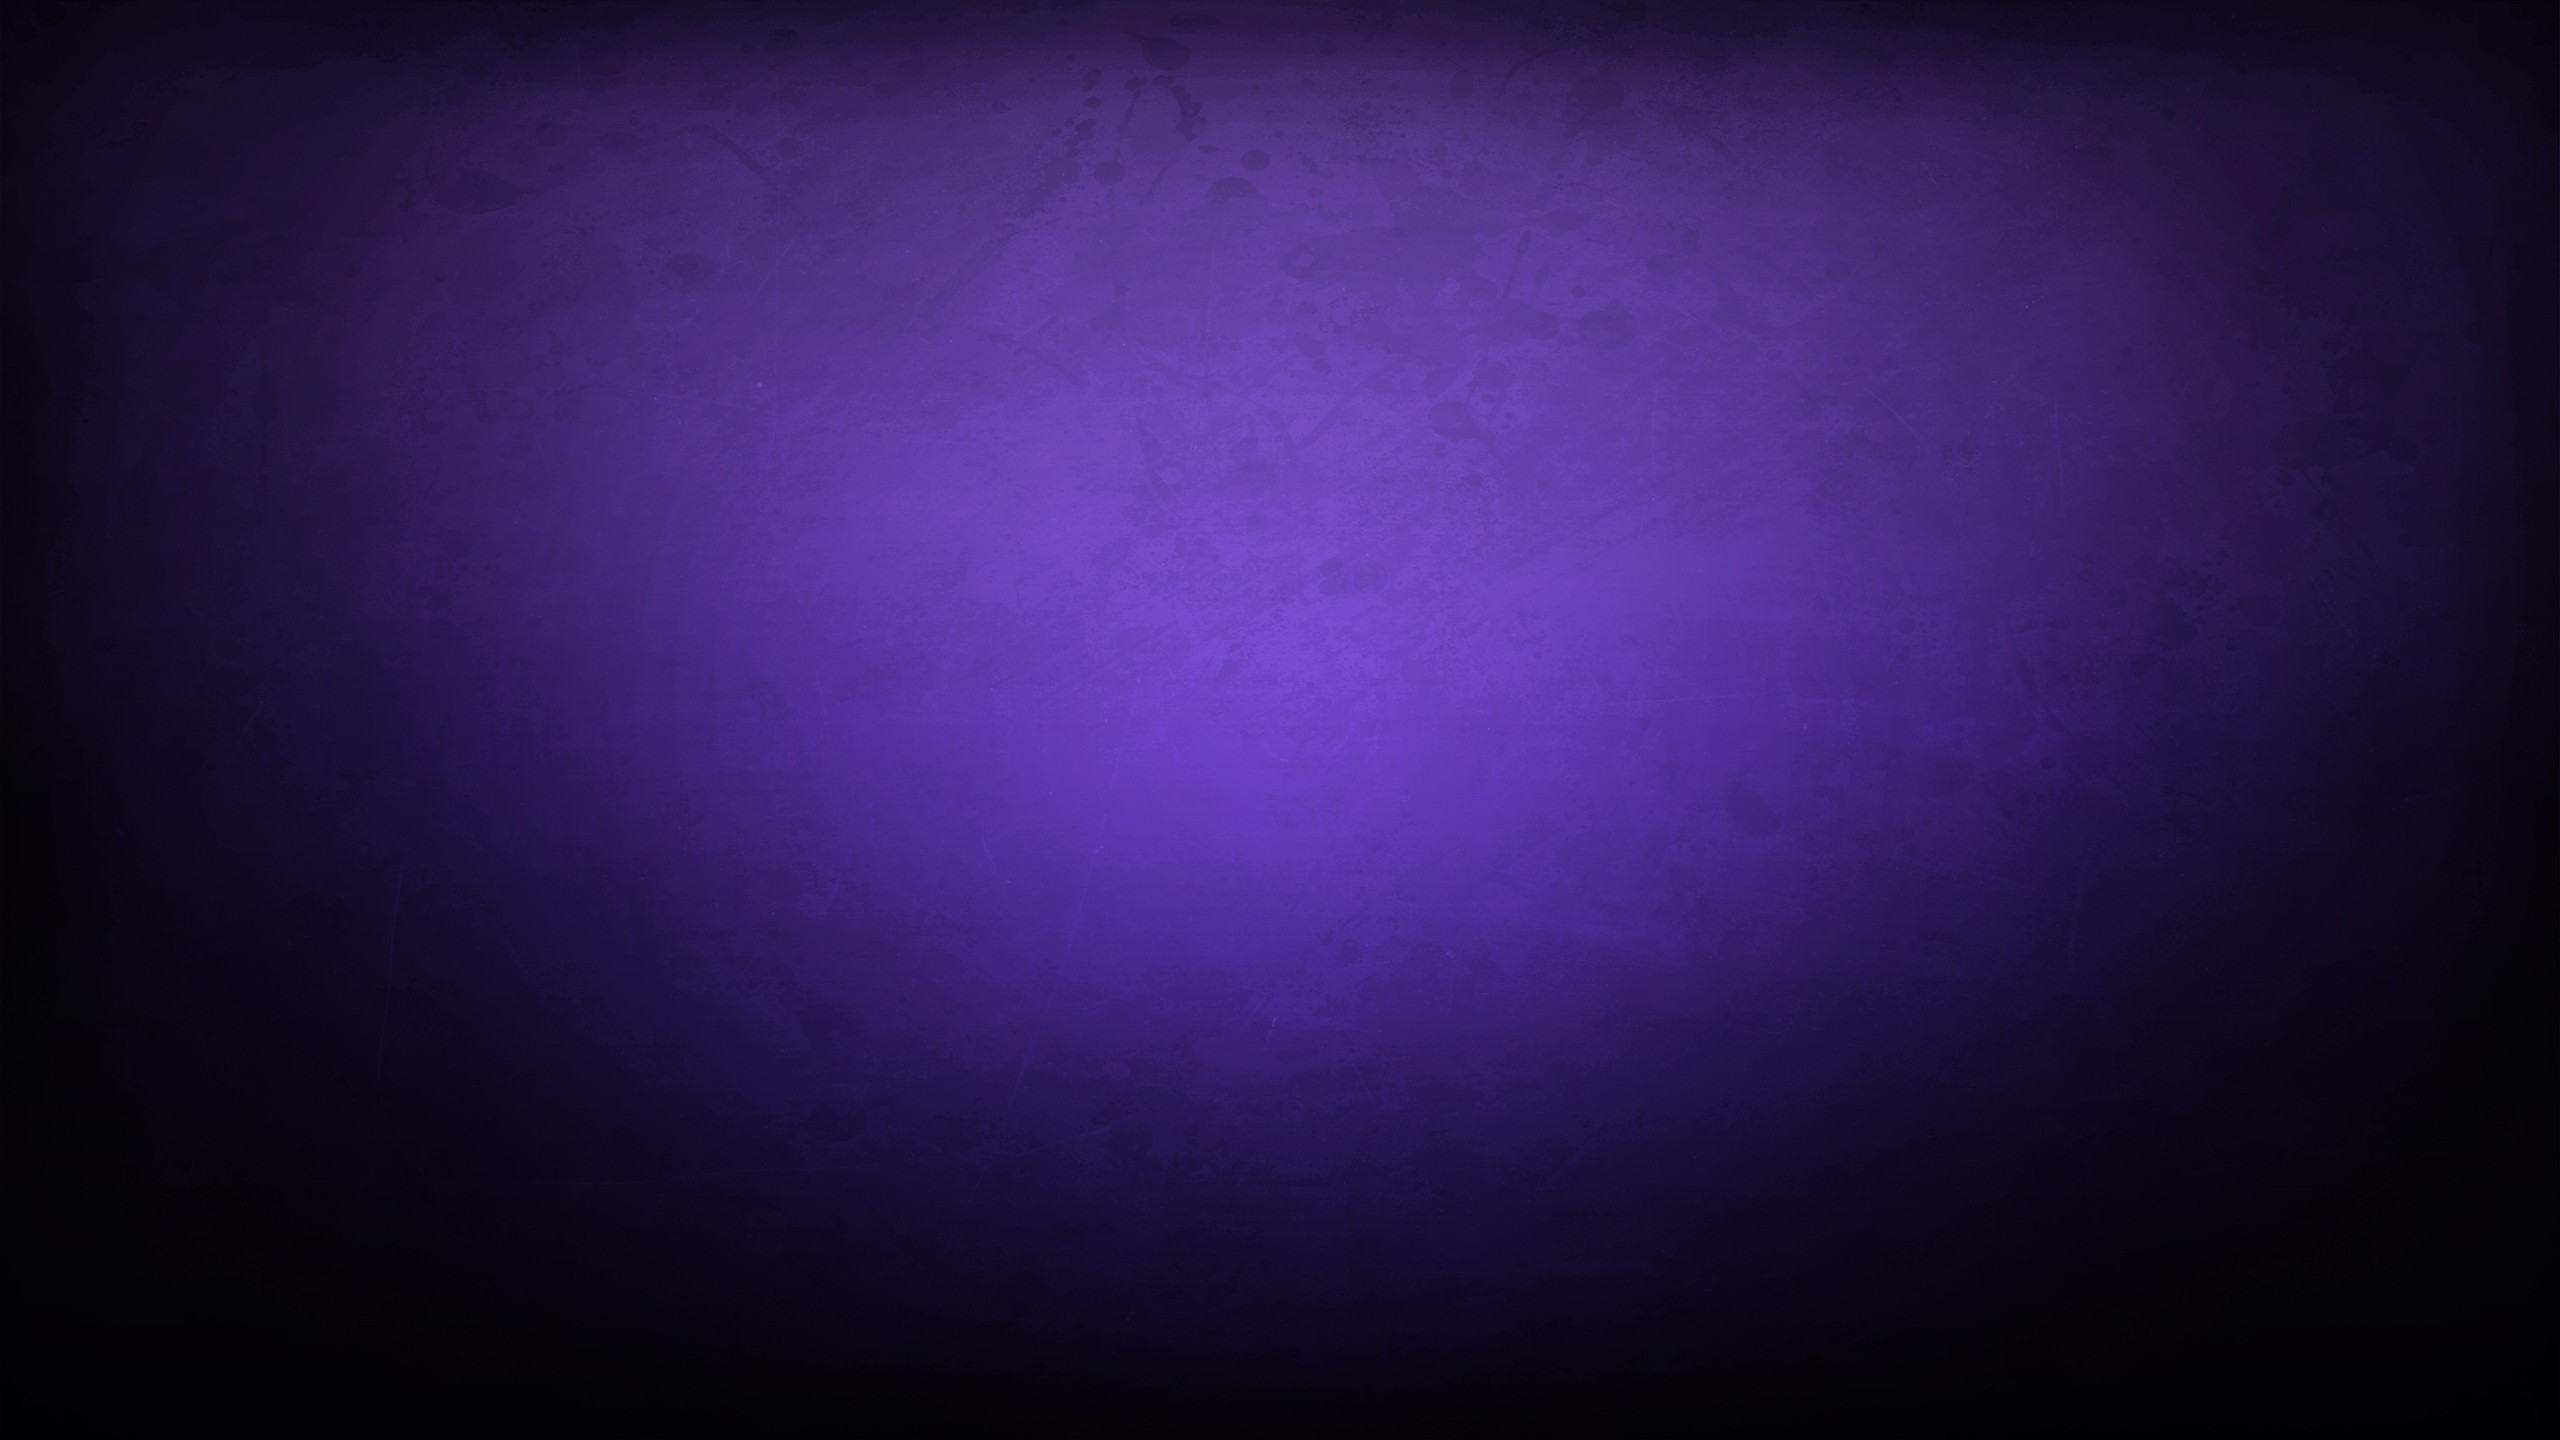 Download Wallpaper Purple Texture Purple Grunge Texture